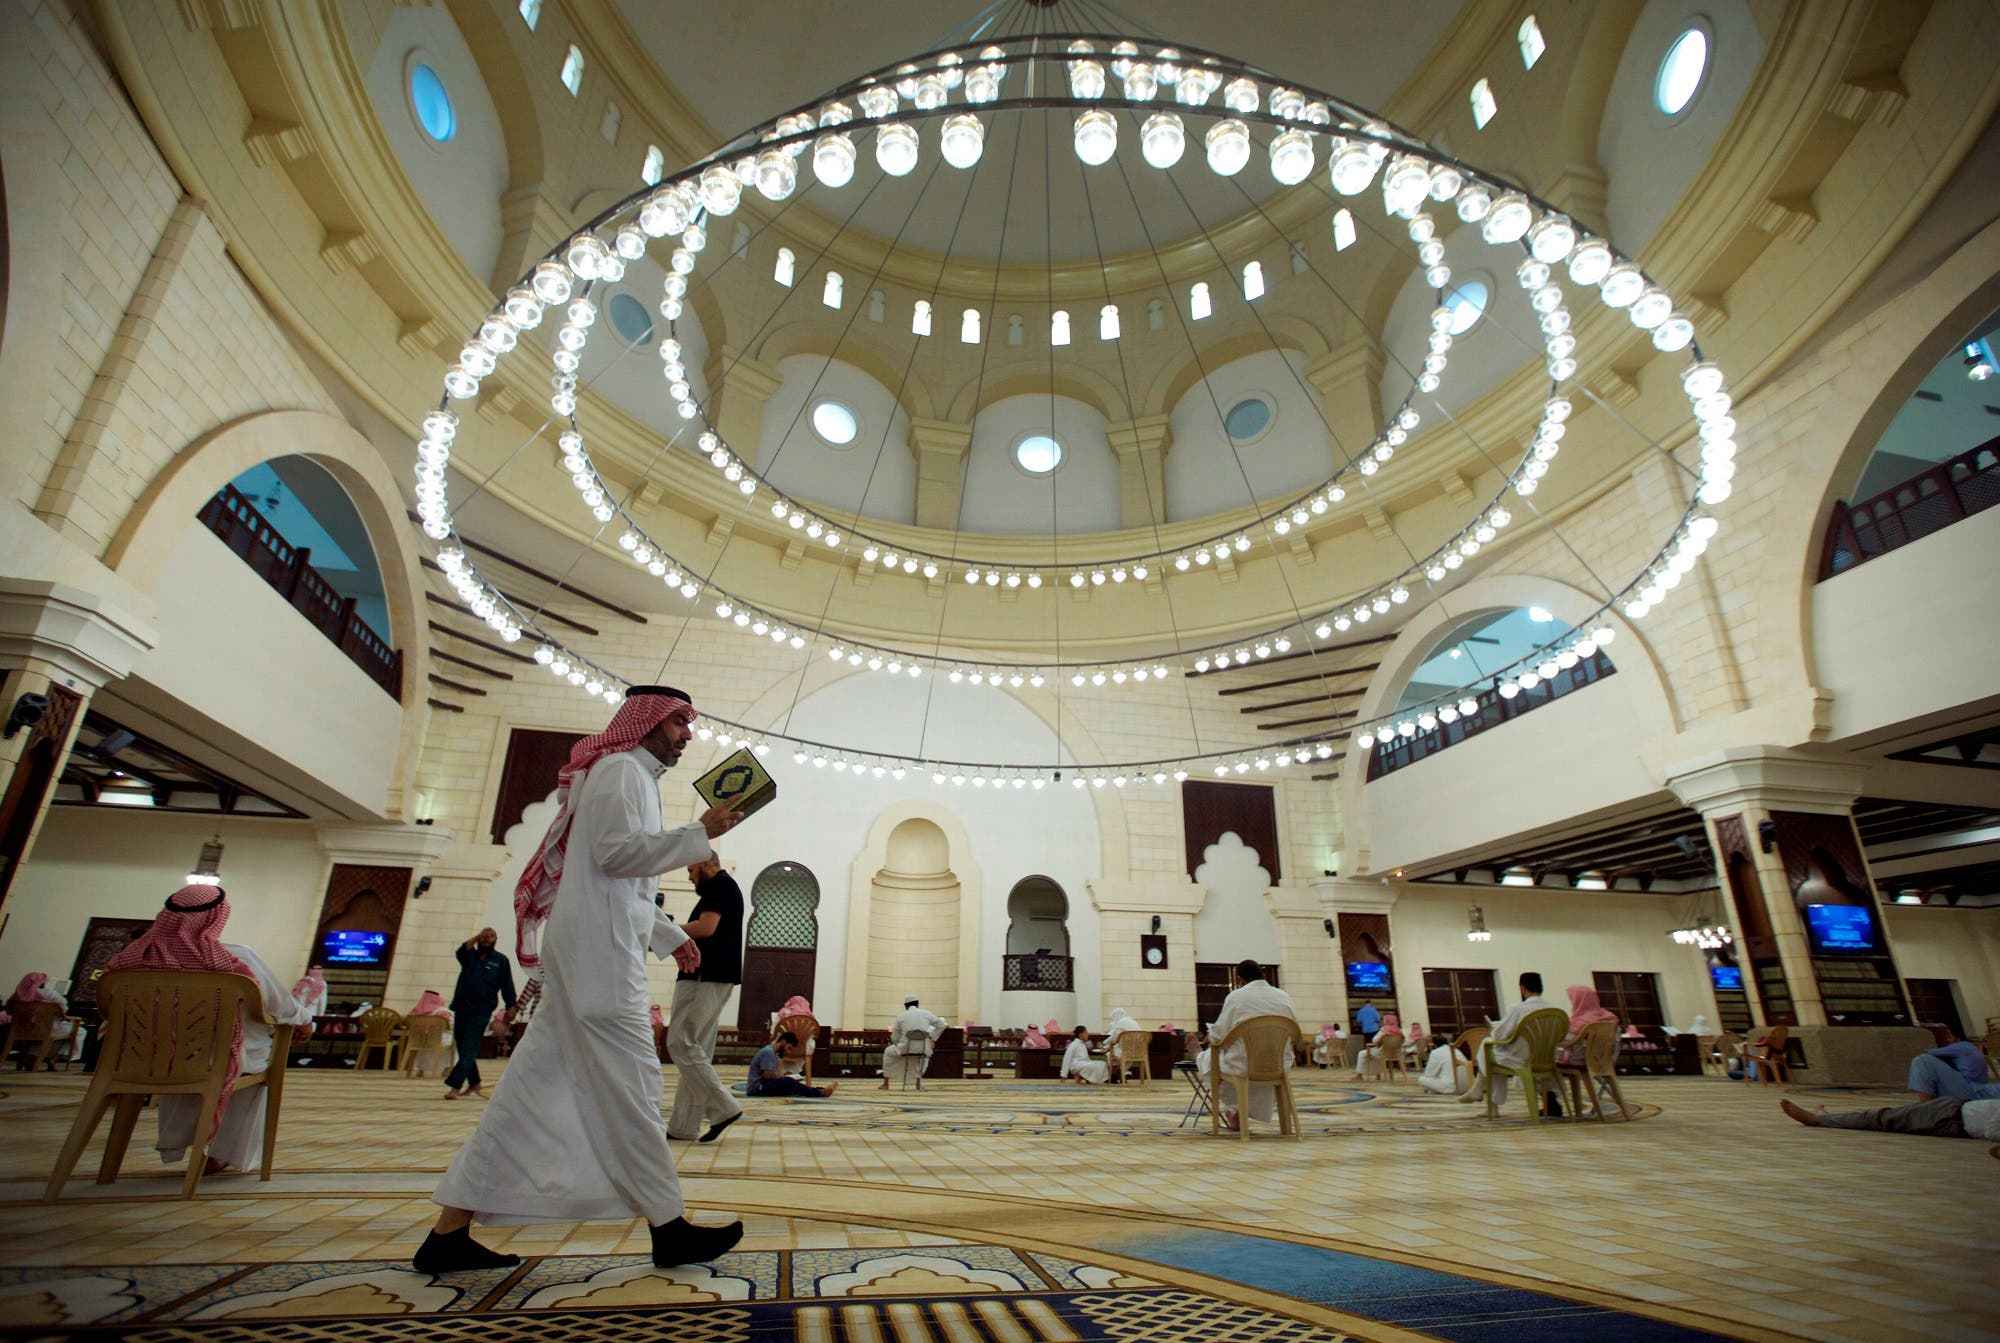 A man walks as he reads the Koran in a mosque during the fasting month of Ramadan, in Riyadh on May 29, 2017. (Reuters)